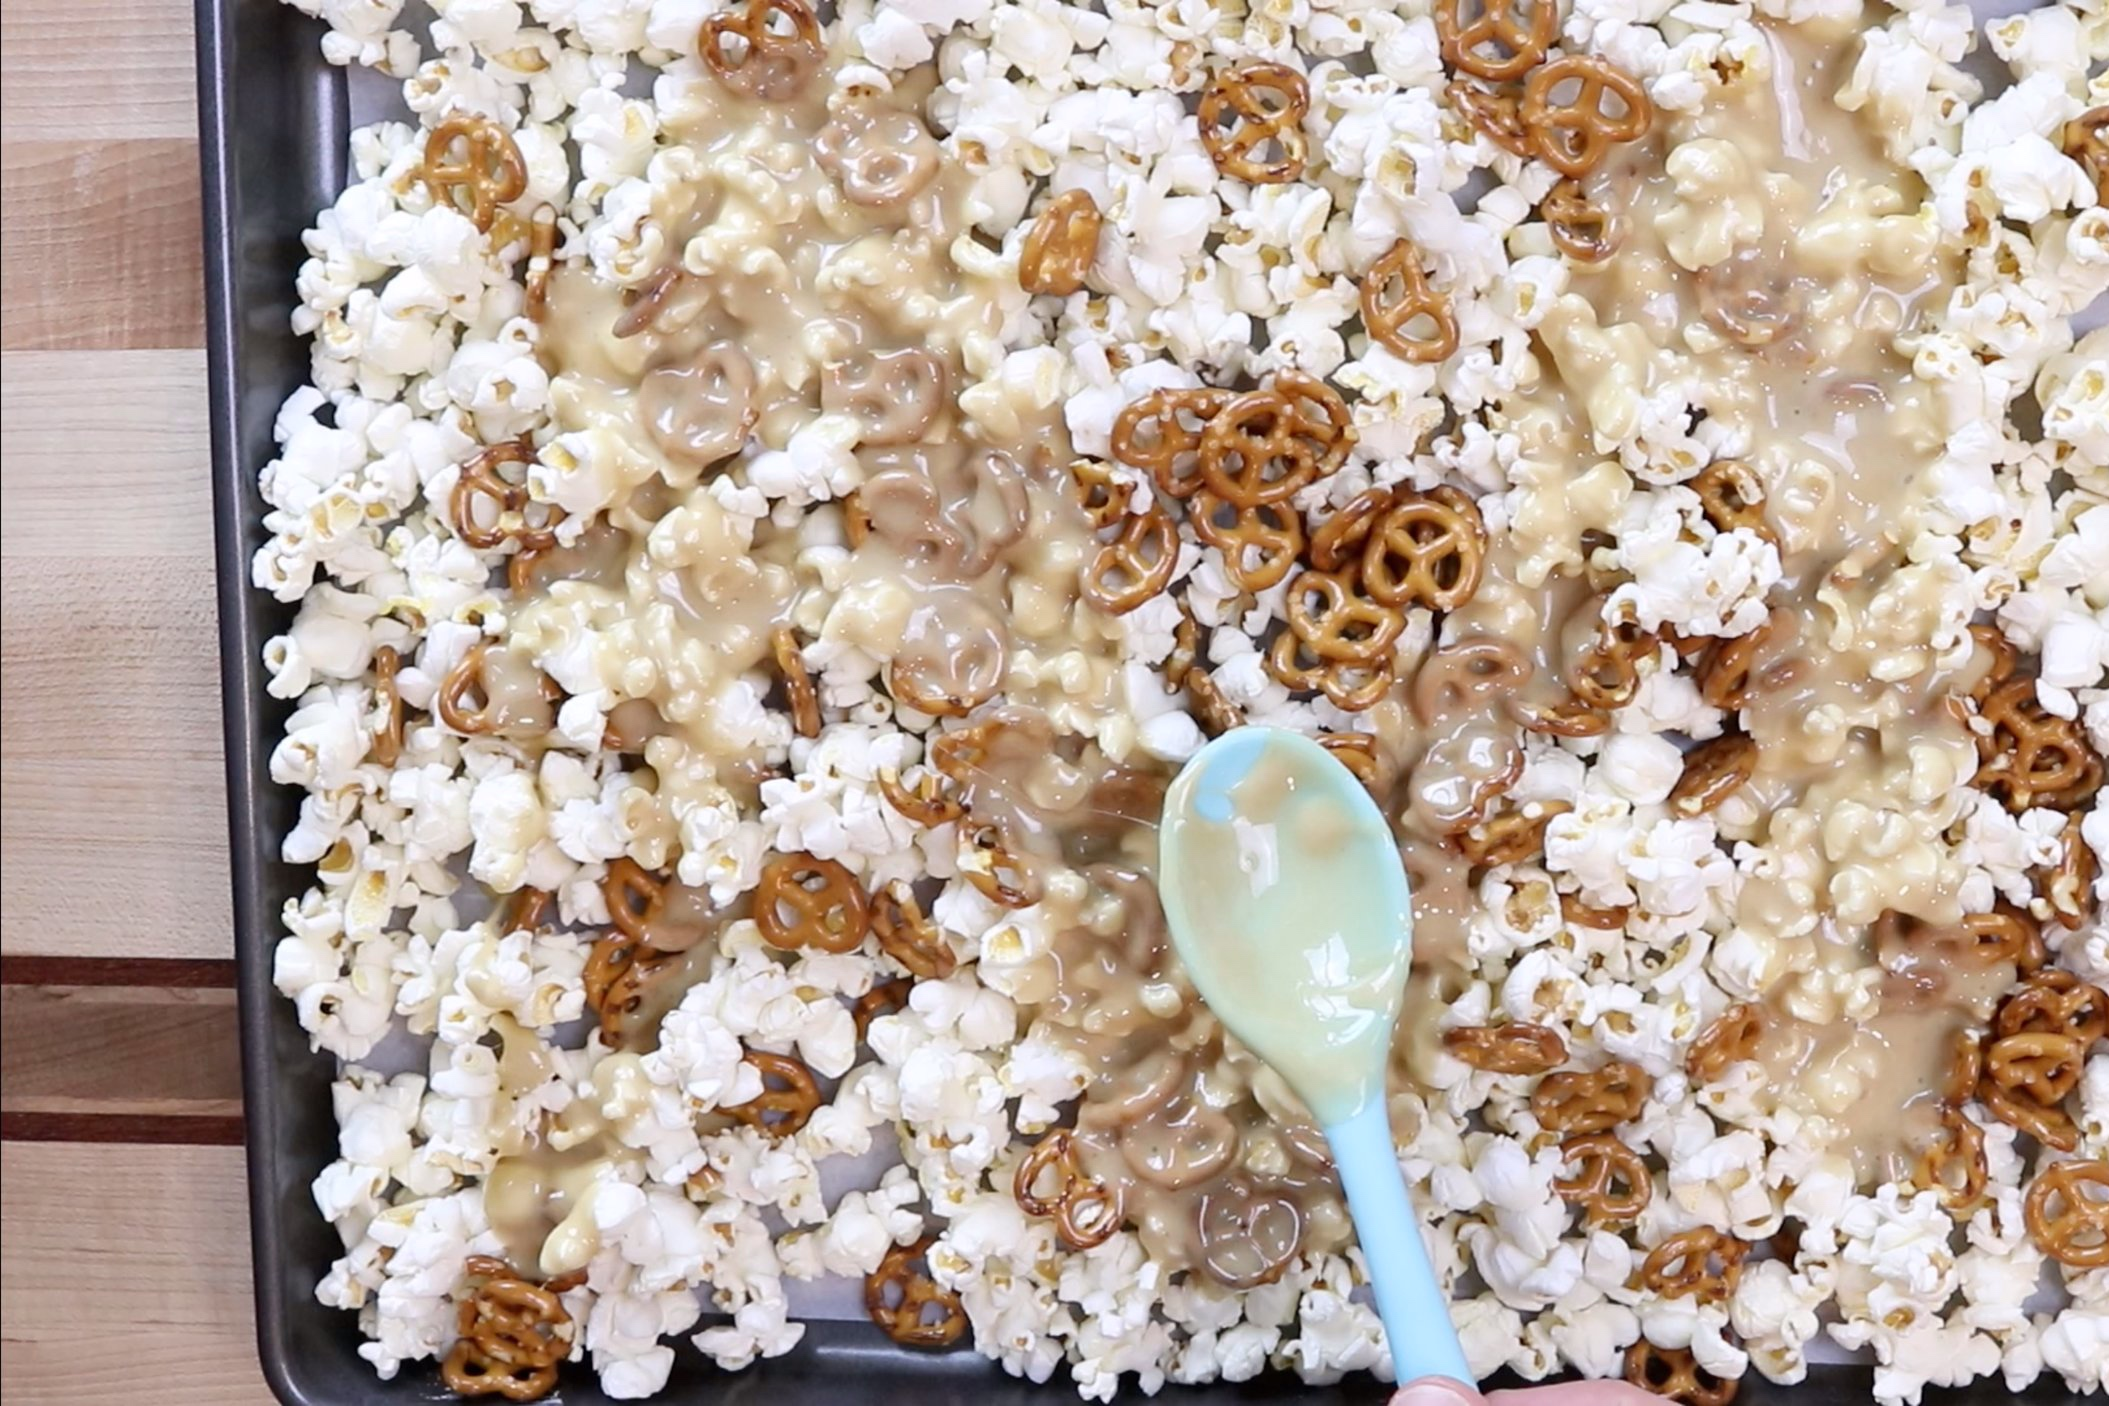 5. Pour the marshmallow mixture evenly between both baking sheets and stir until all the popcorn and pretzels are coated. -